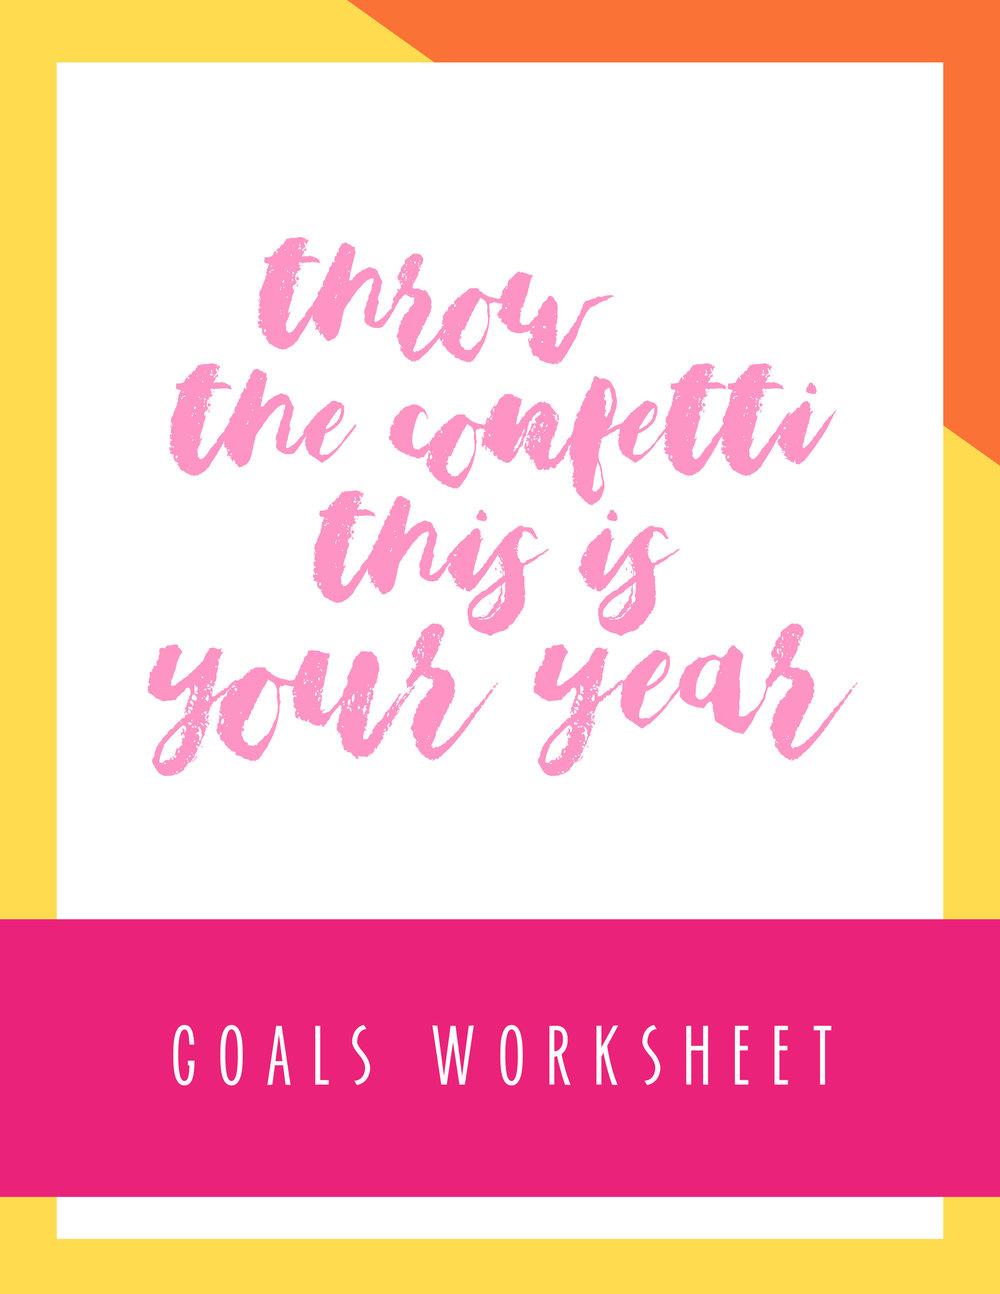 Bold & Pop Freebies Throw Confetti This is Your Year Goals Worksheet